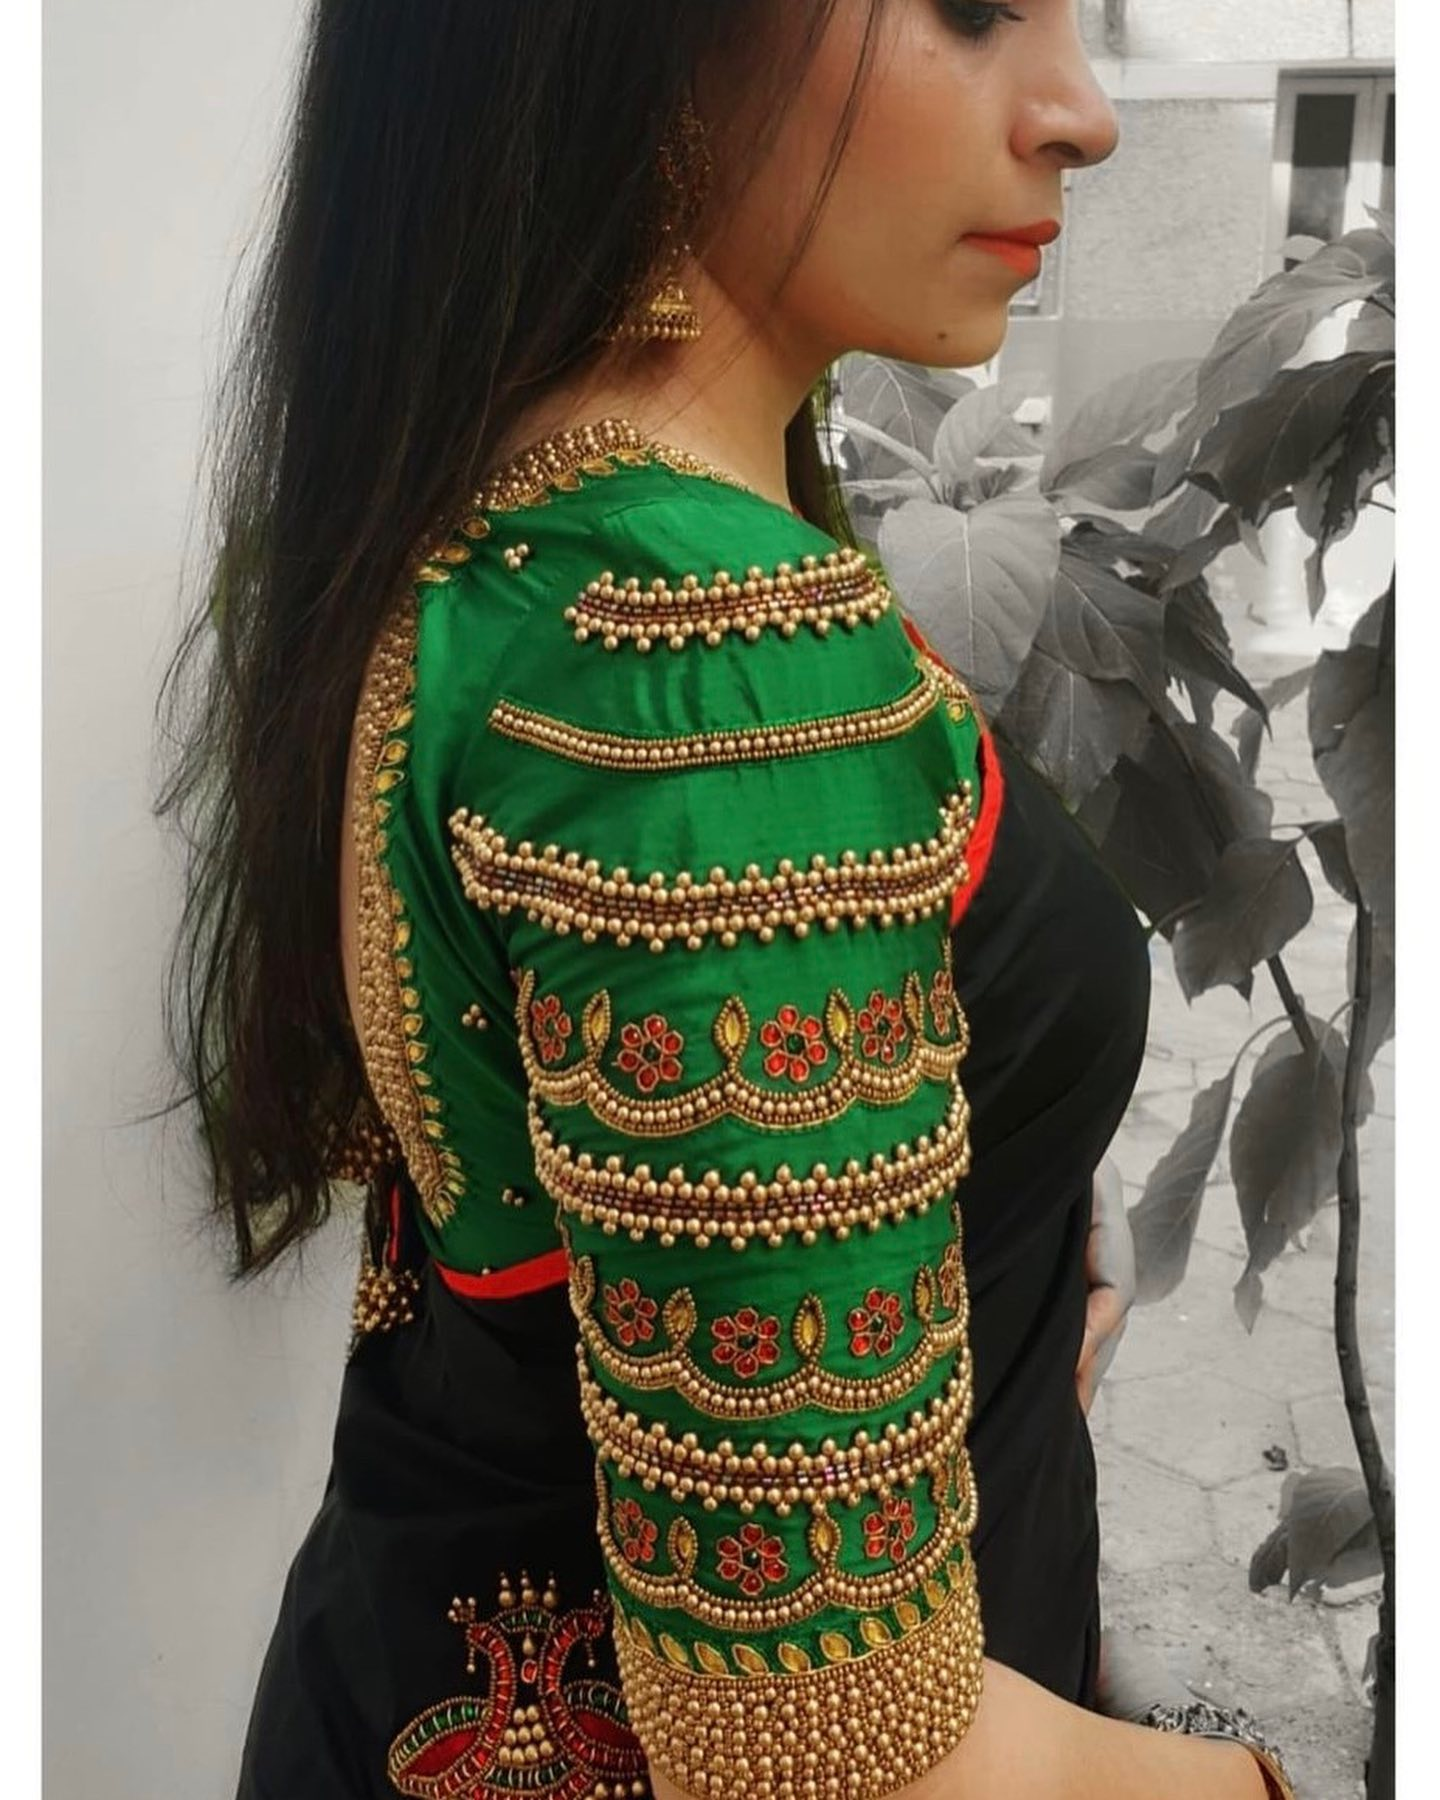 Stunning green color bridal blouse sleeve with bead and stone aari work. 2021-09-13